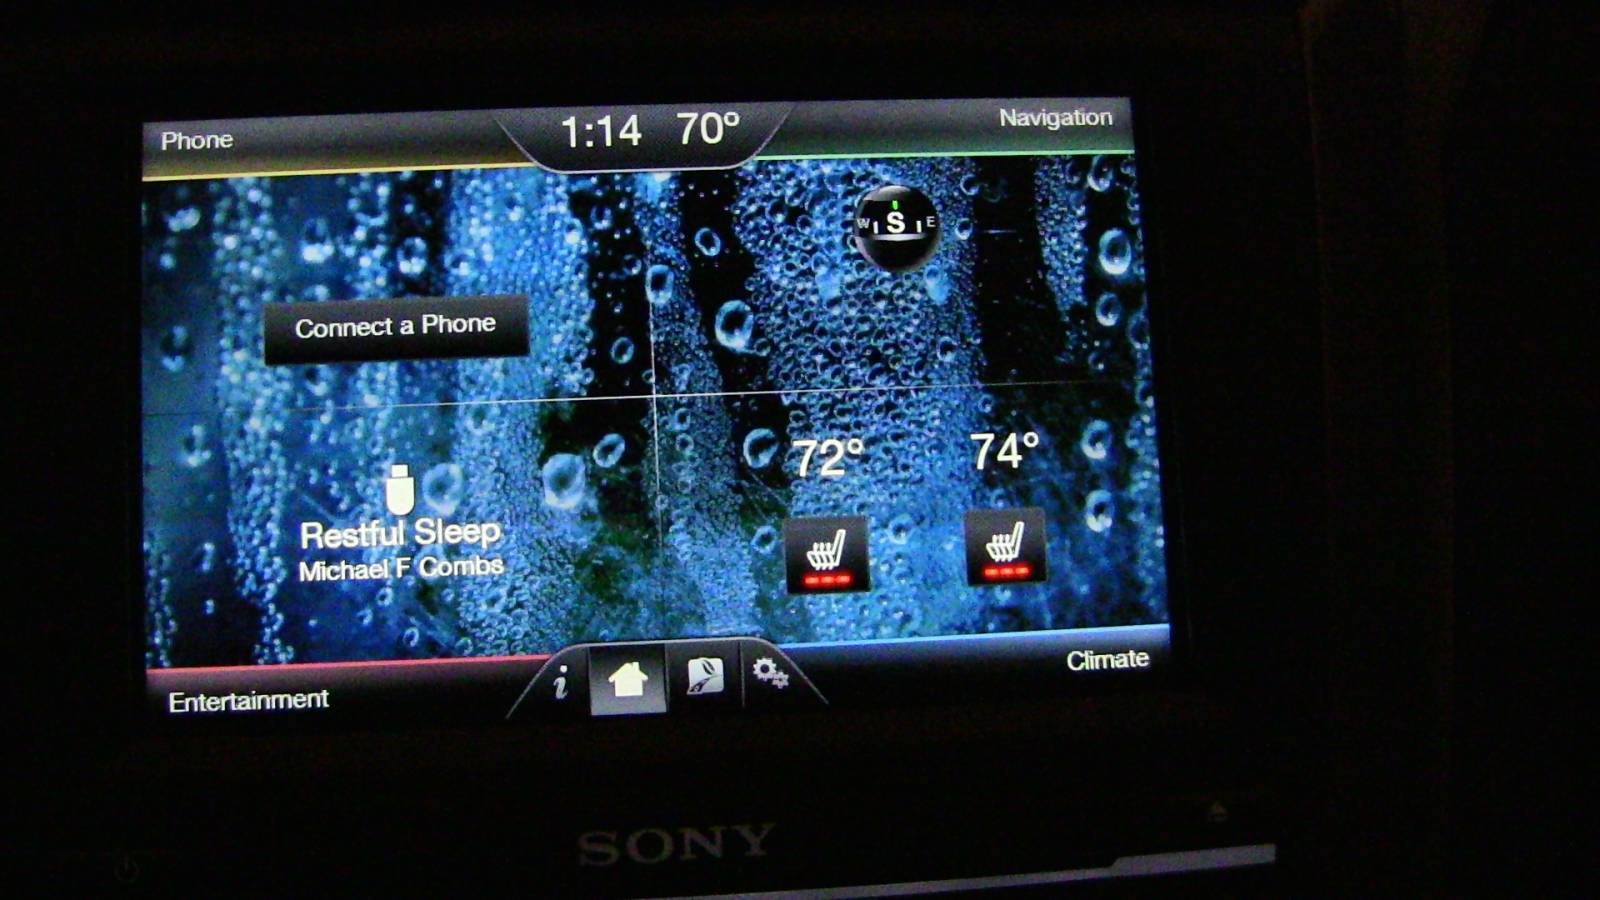 Myford touch home screen splendida futuris bright future photo gallery ford fusion